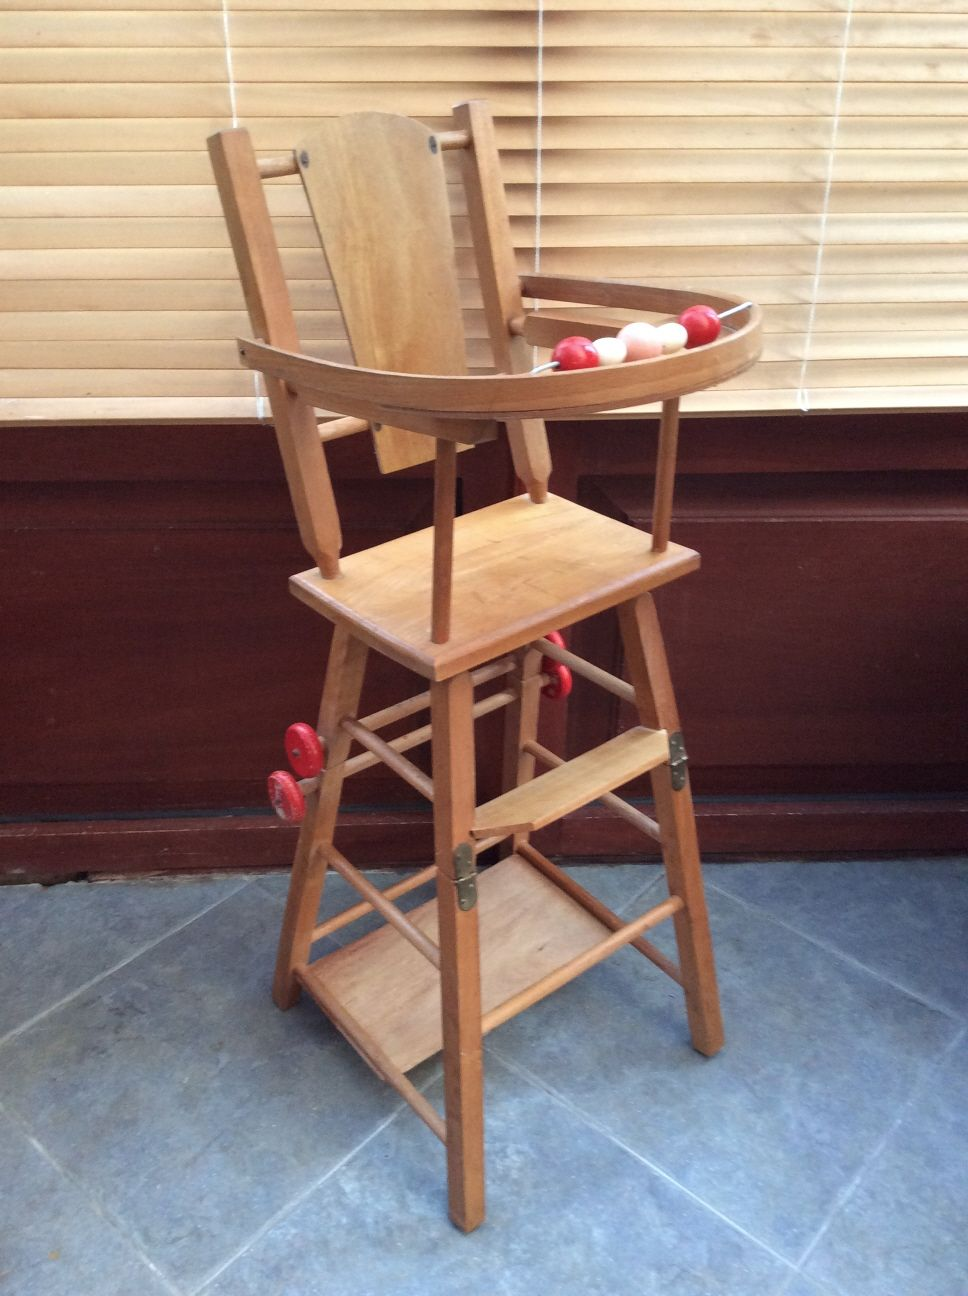 Antique Doll High Chair - Antique Doll High Chair Antique Furniture